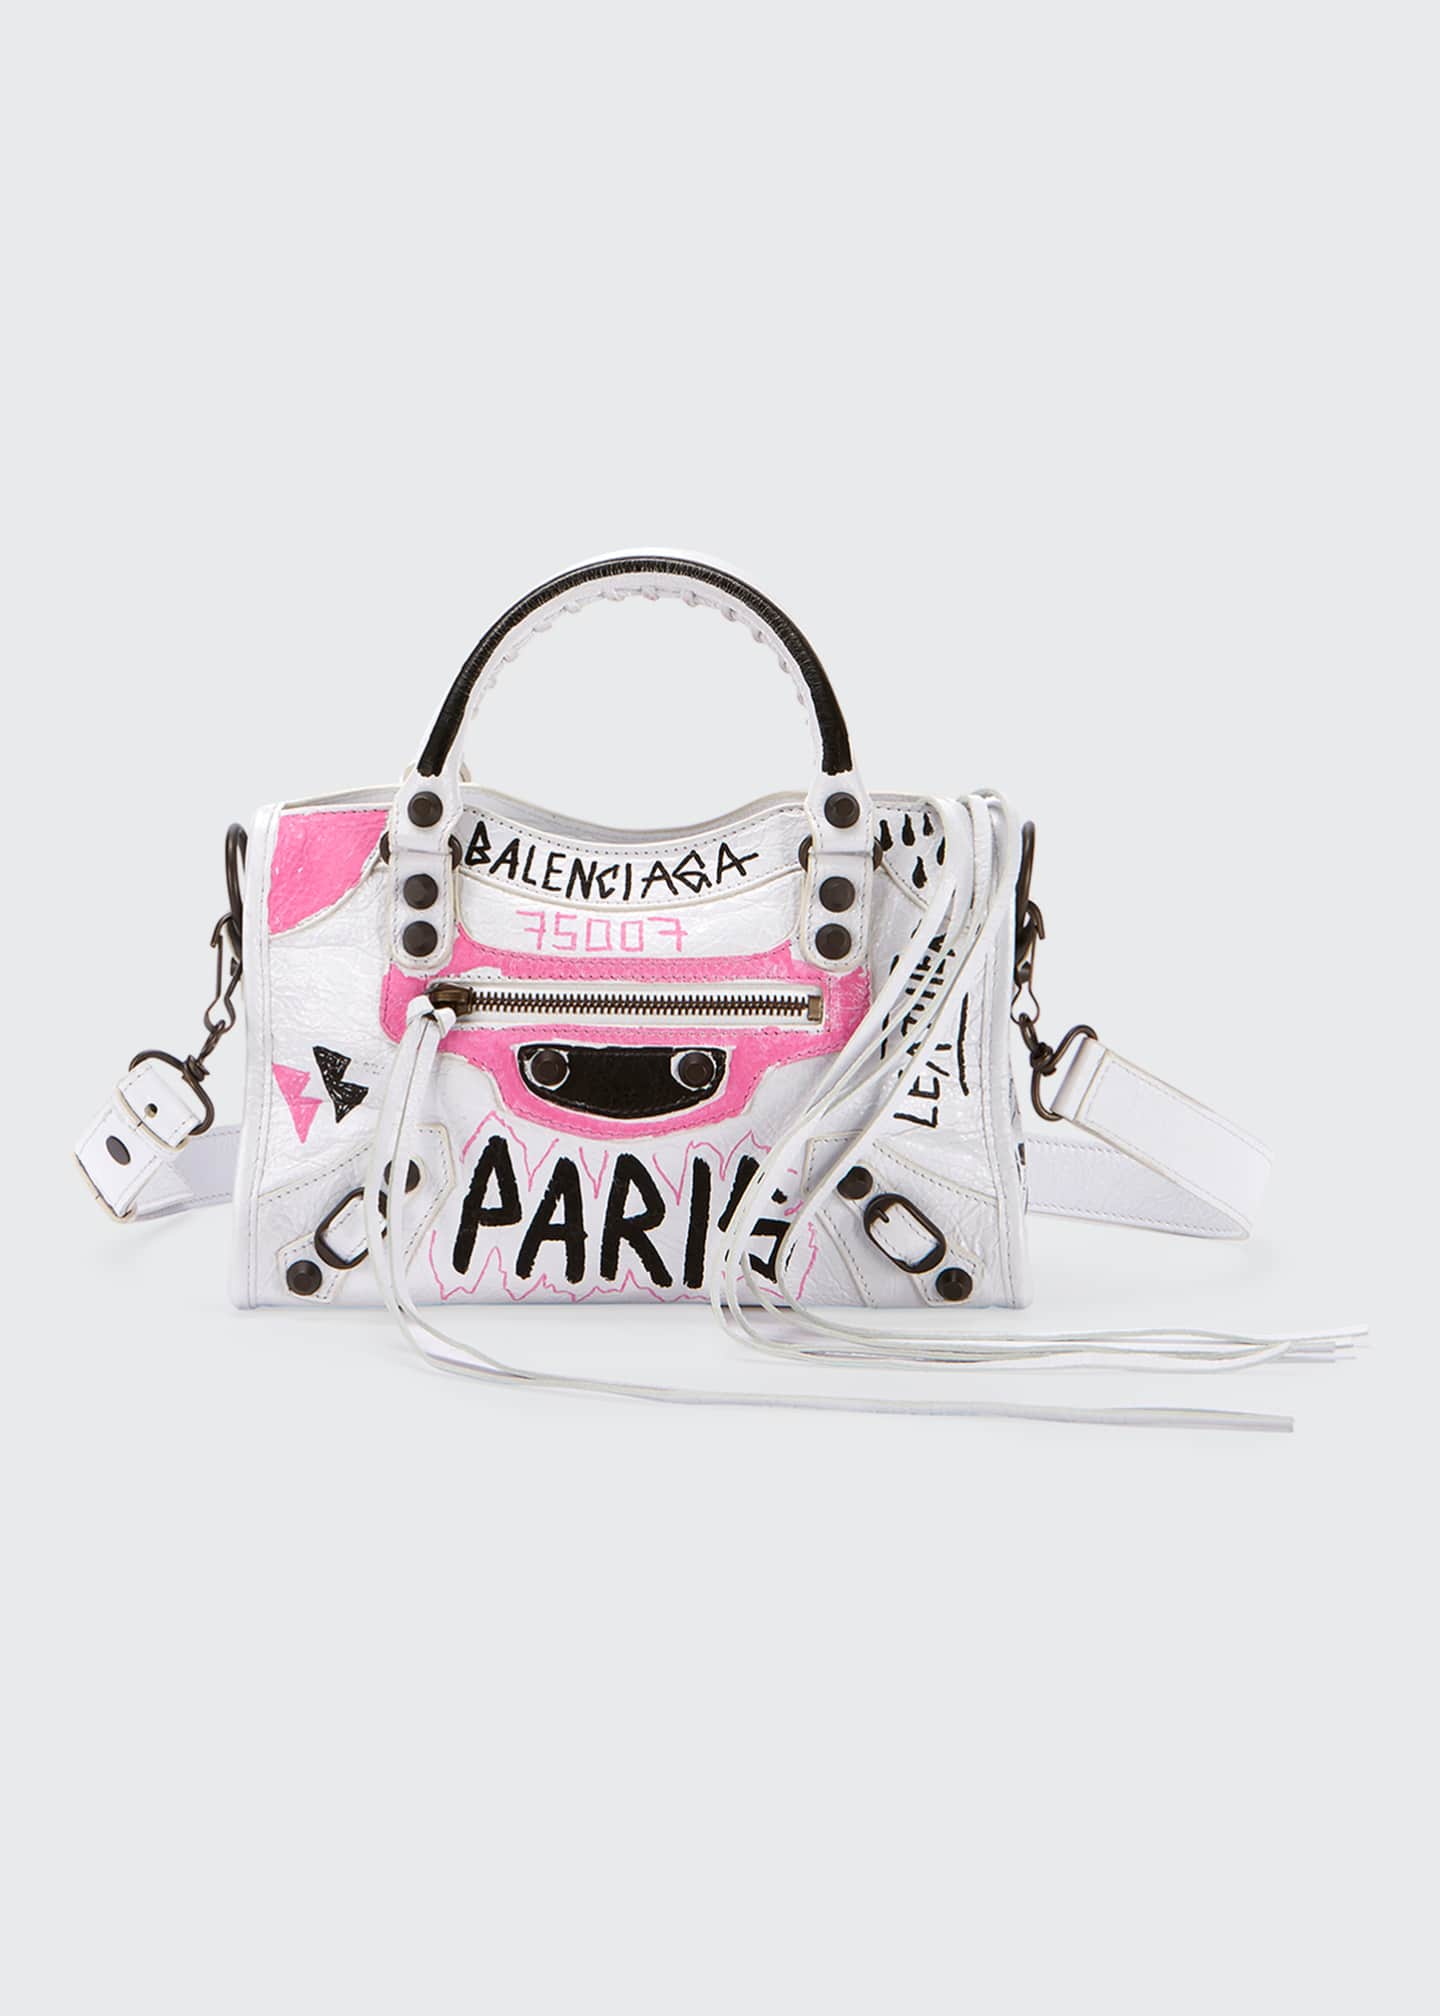 Balenciaga Classic City Mini Graffiti Satchel Bag